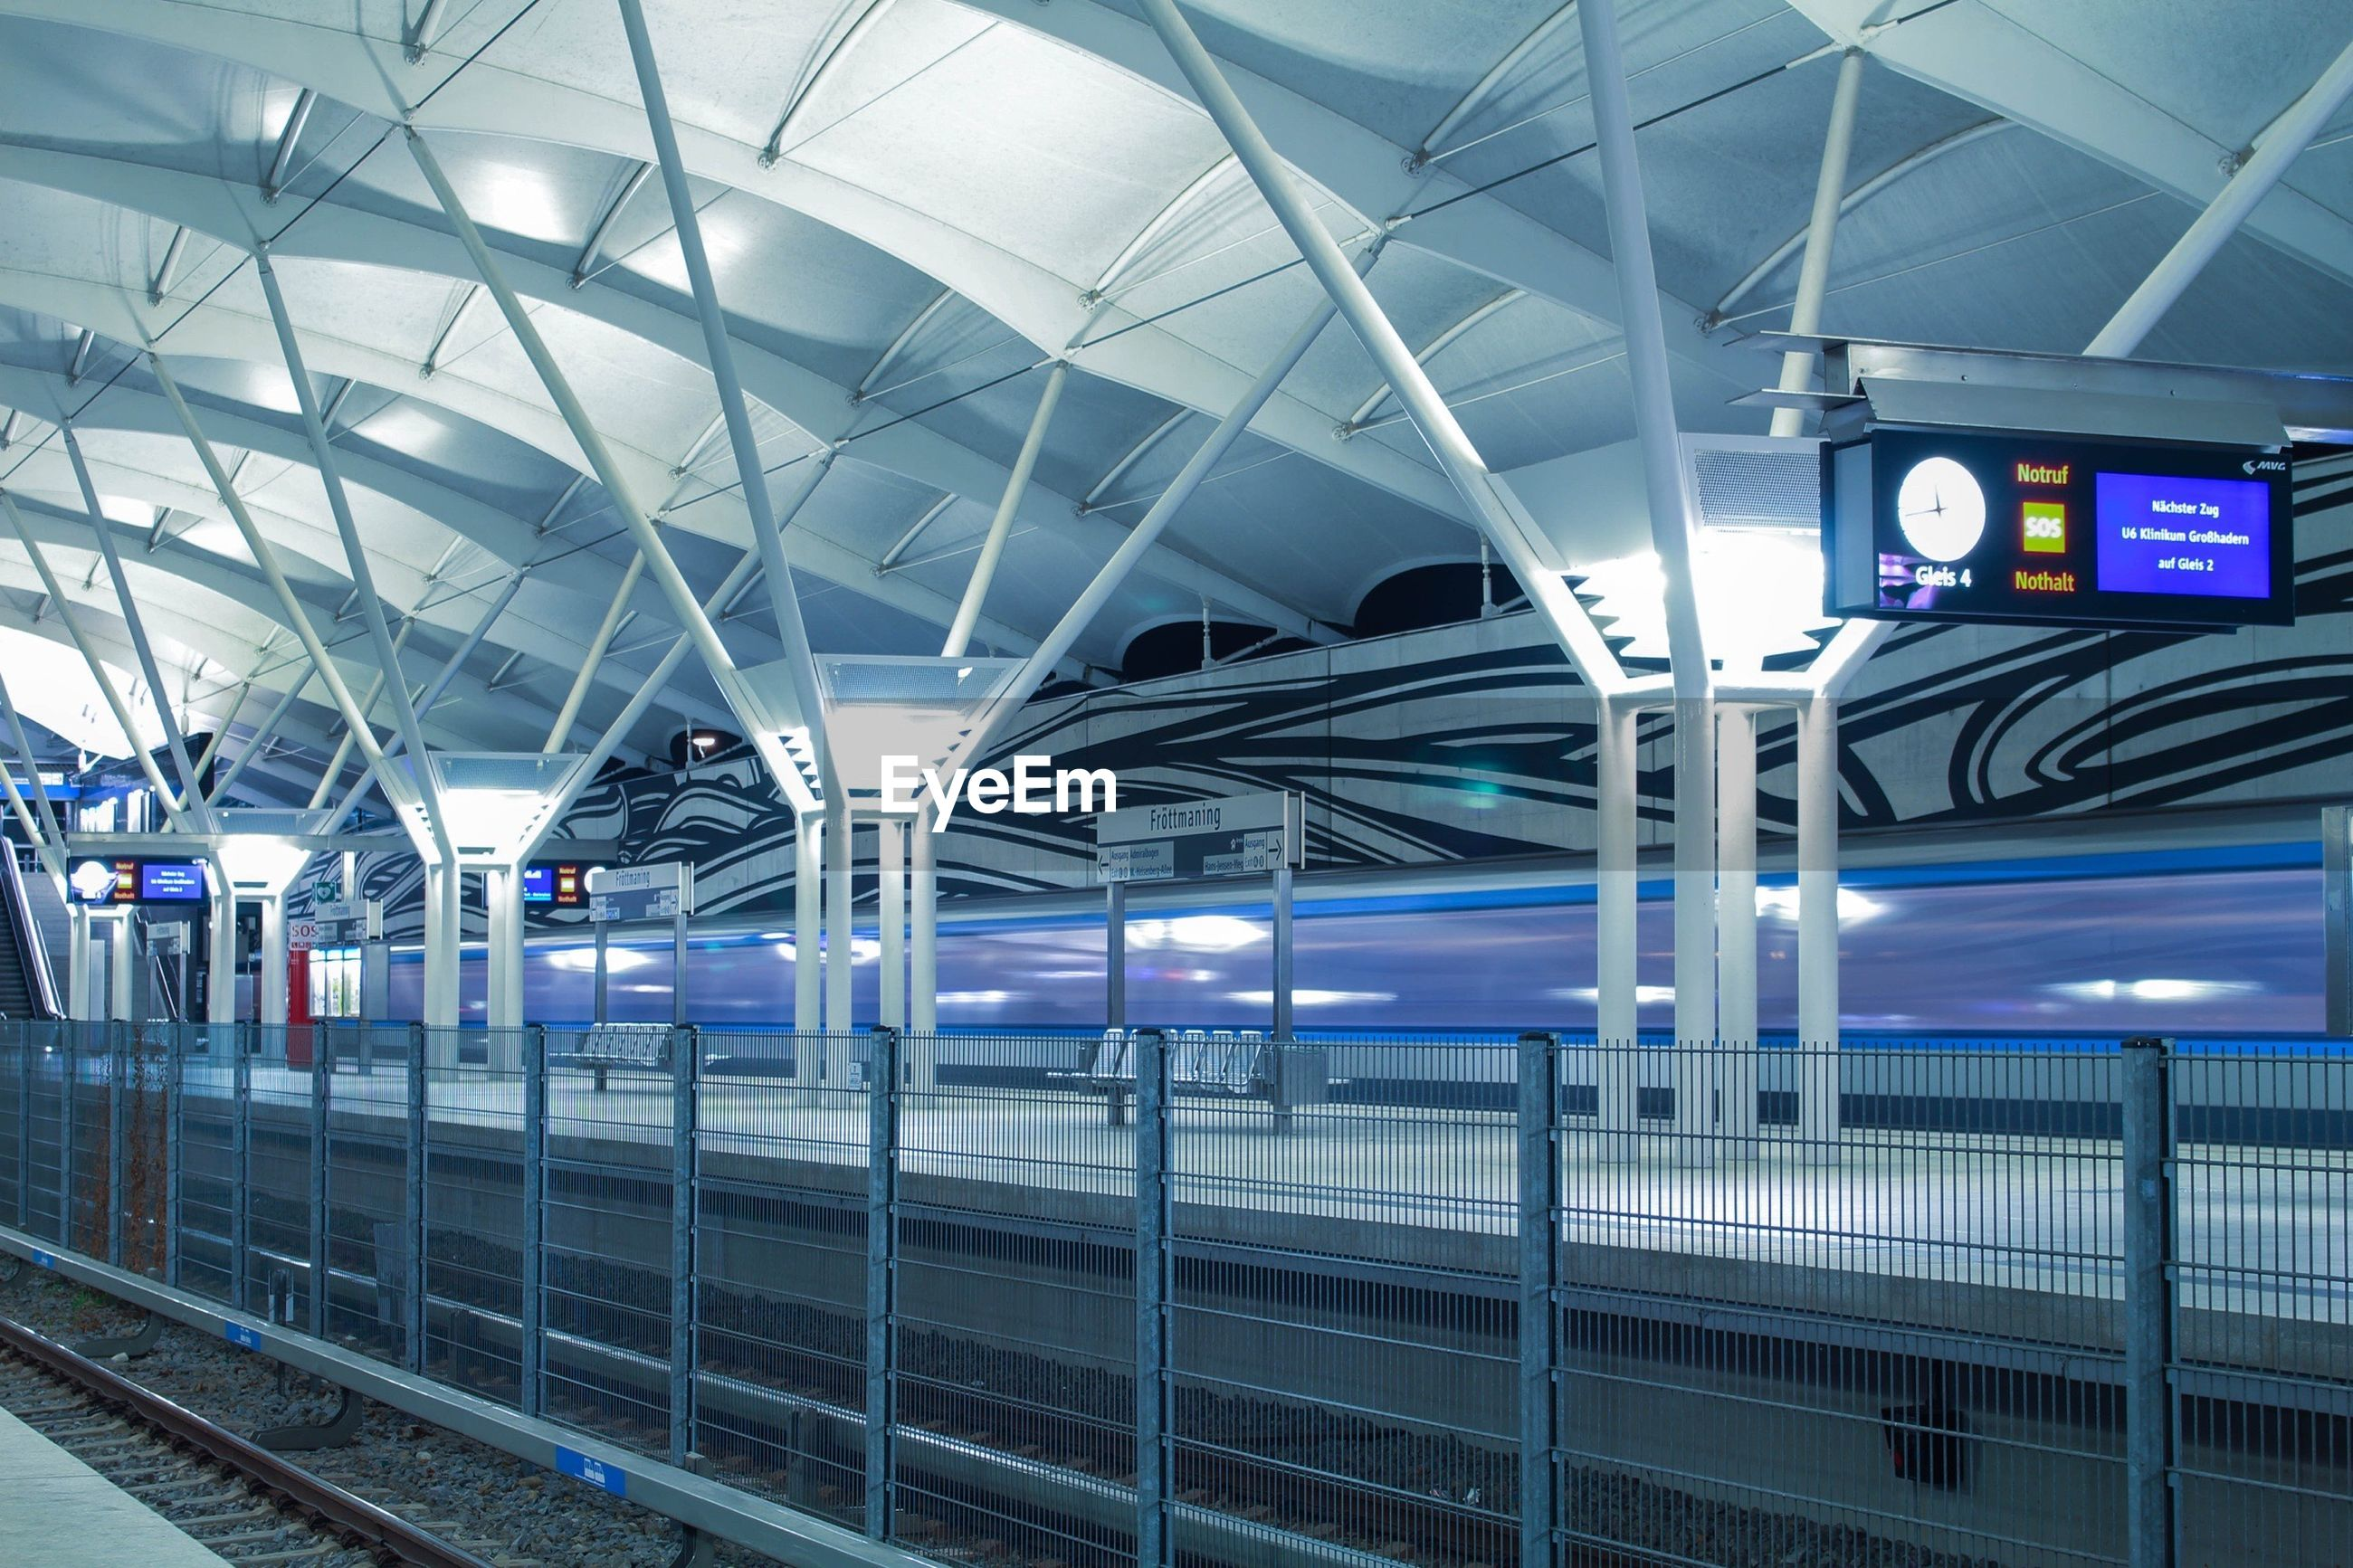 railroad station, indoors, public transportation, transportation, railroad station platform, rail transportation, train - vehicle, subway station, architecture, built structure, transportation building - type of building, ceiling, travel, railroad track, text, interior, passenger train, western script, mode of transport, station